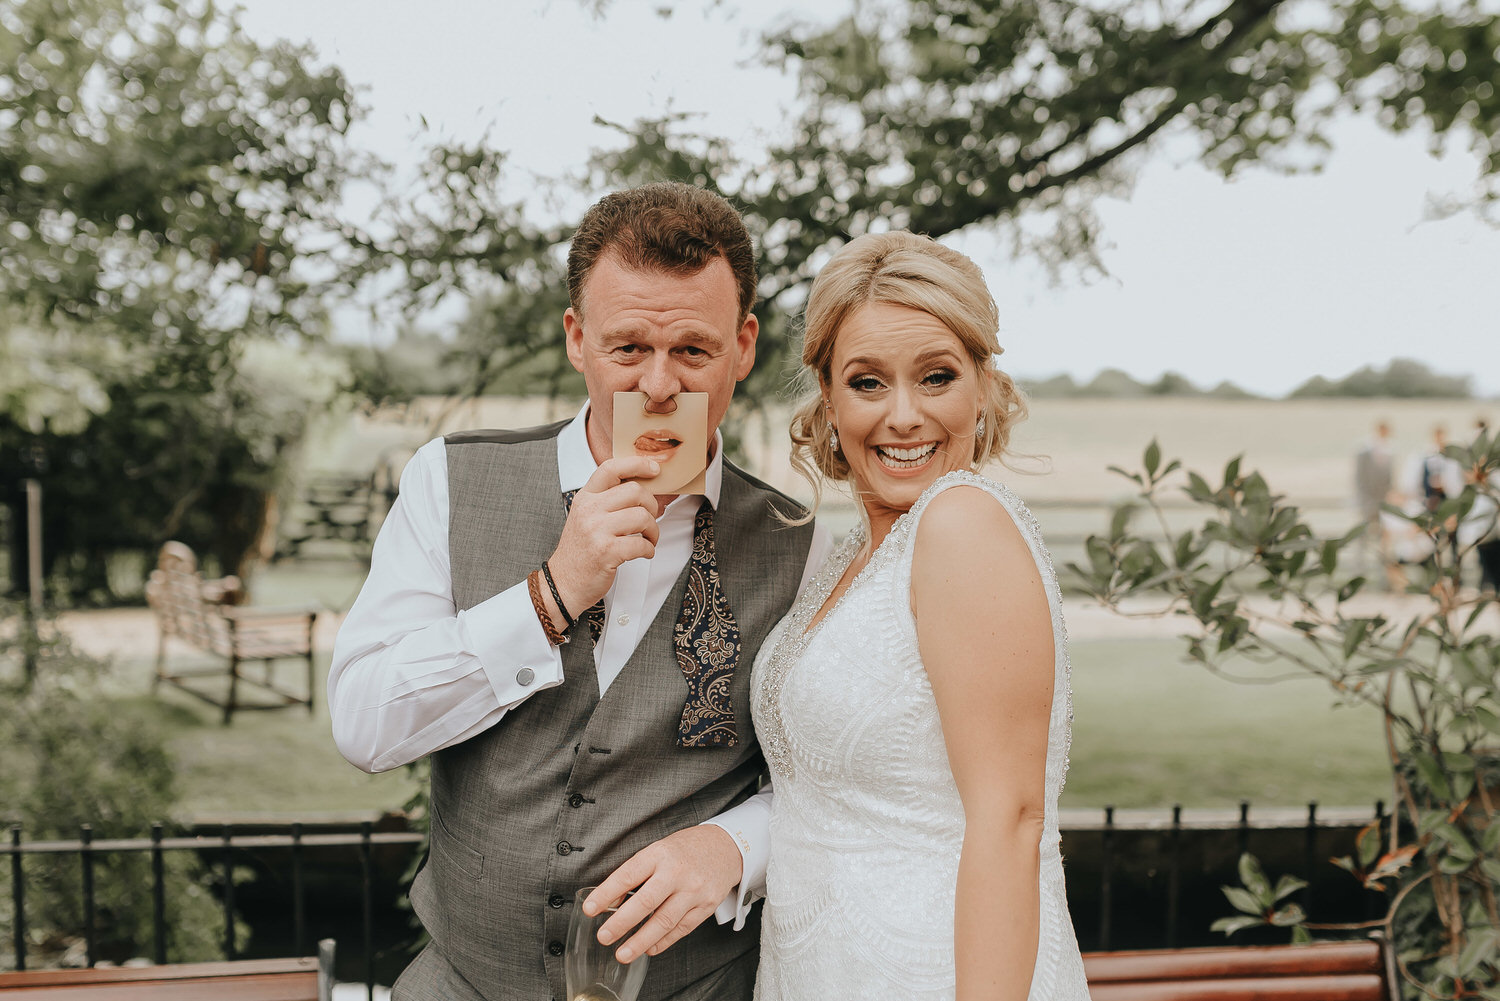 Image of an Essex funfair wedding at Old Brook Barn in Romford near London with fun wedding photographs taken by Essex wedding photographer Kelsie Low Photography.